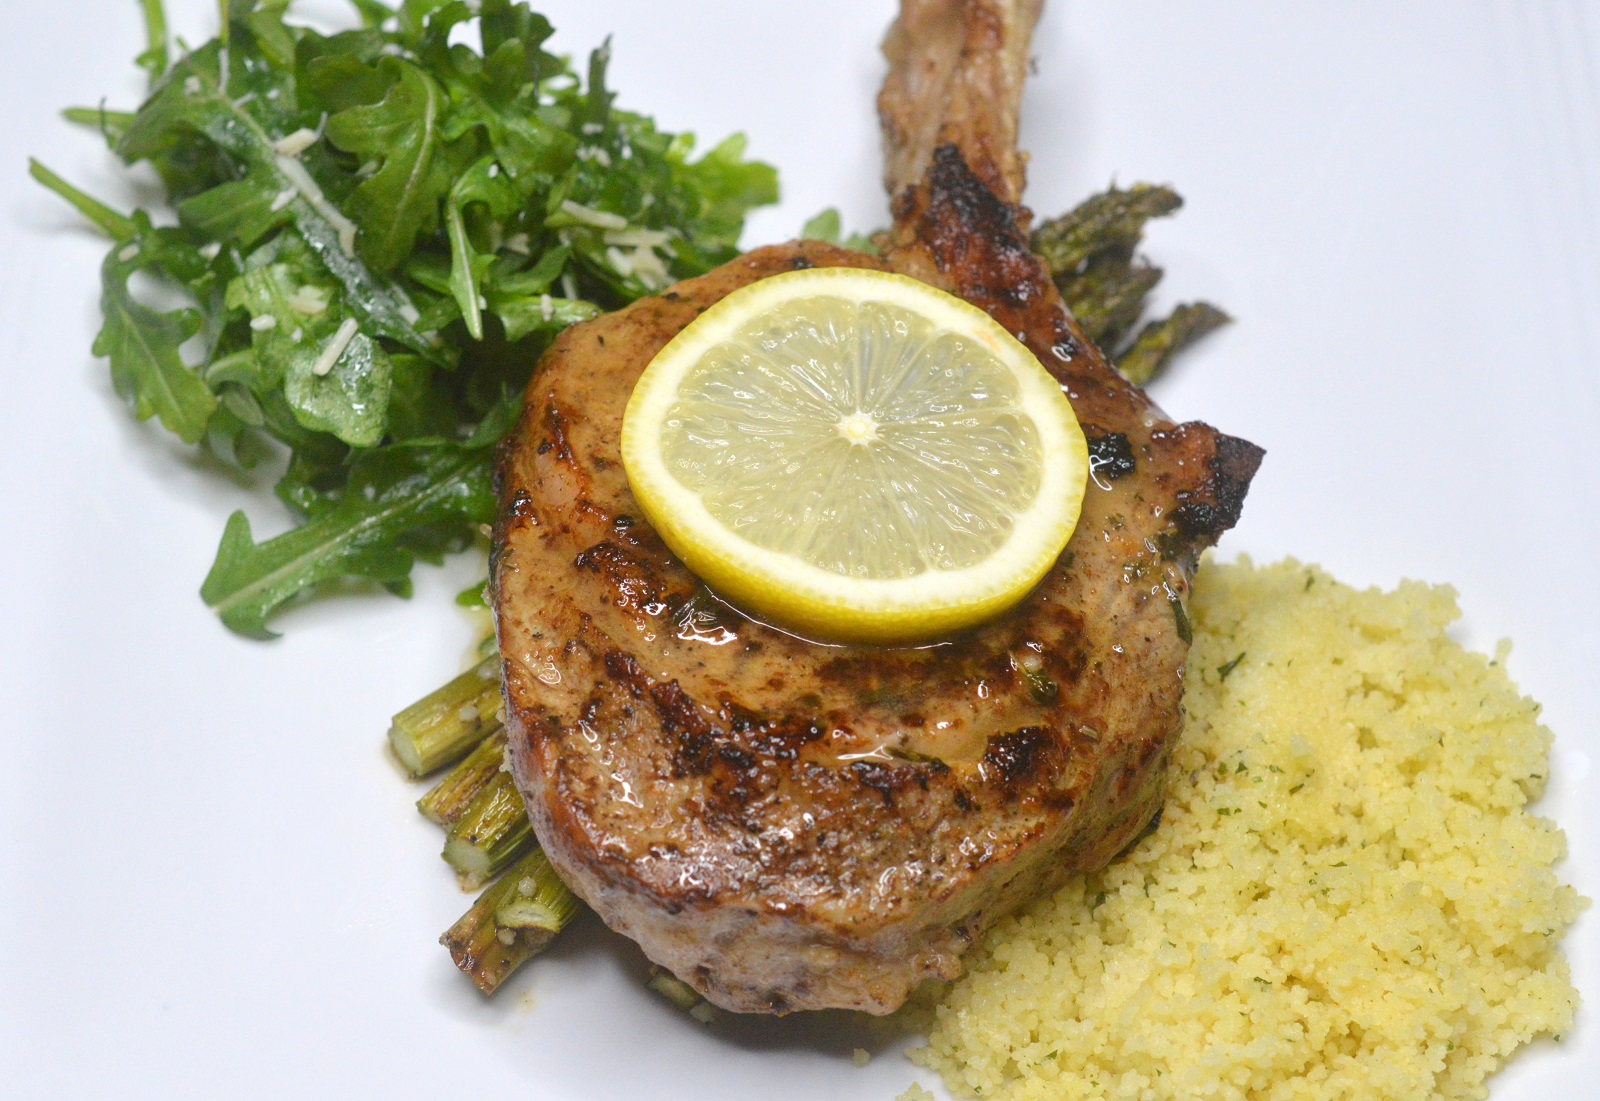 veal chop recipes cast iron skillet Pan-Fried Veal Chops with White Wine Sauce